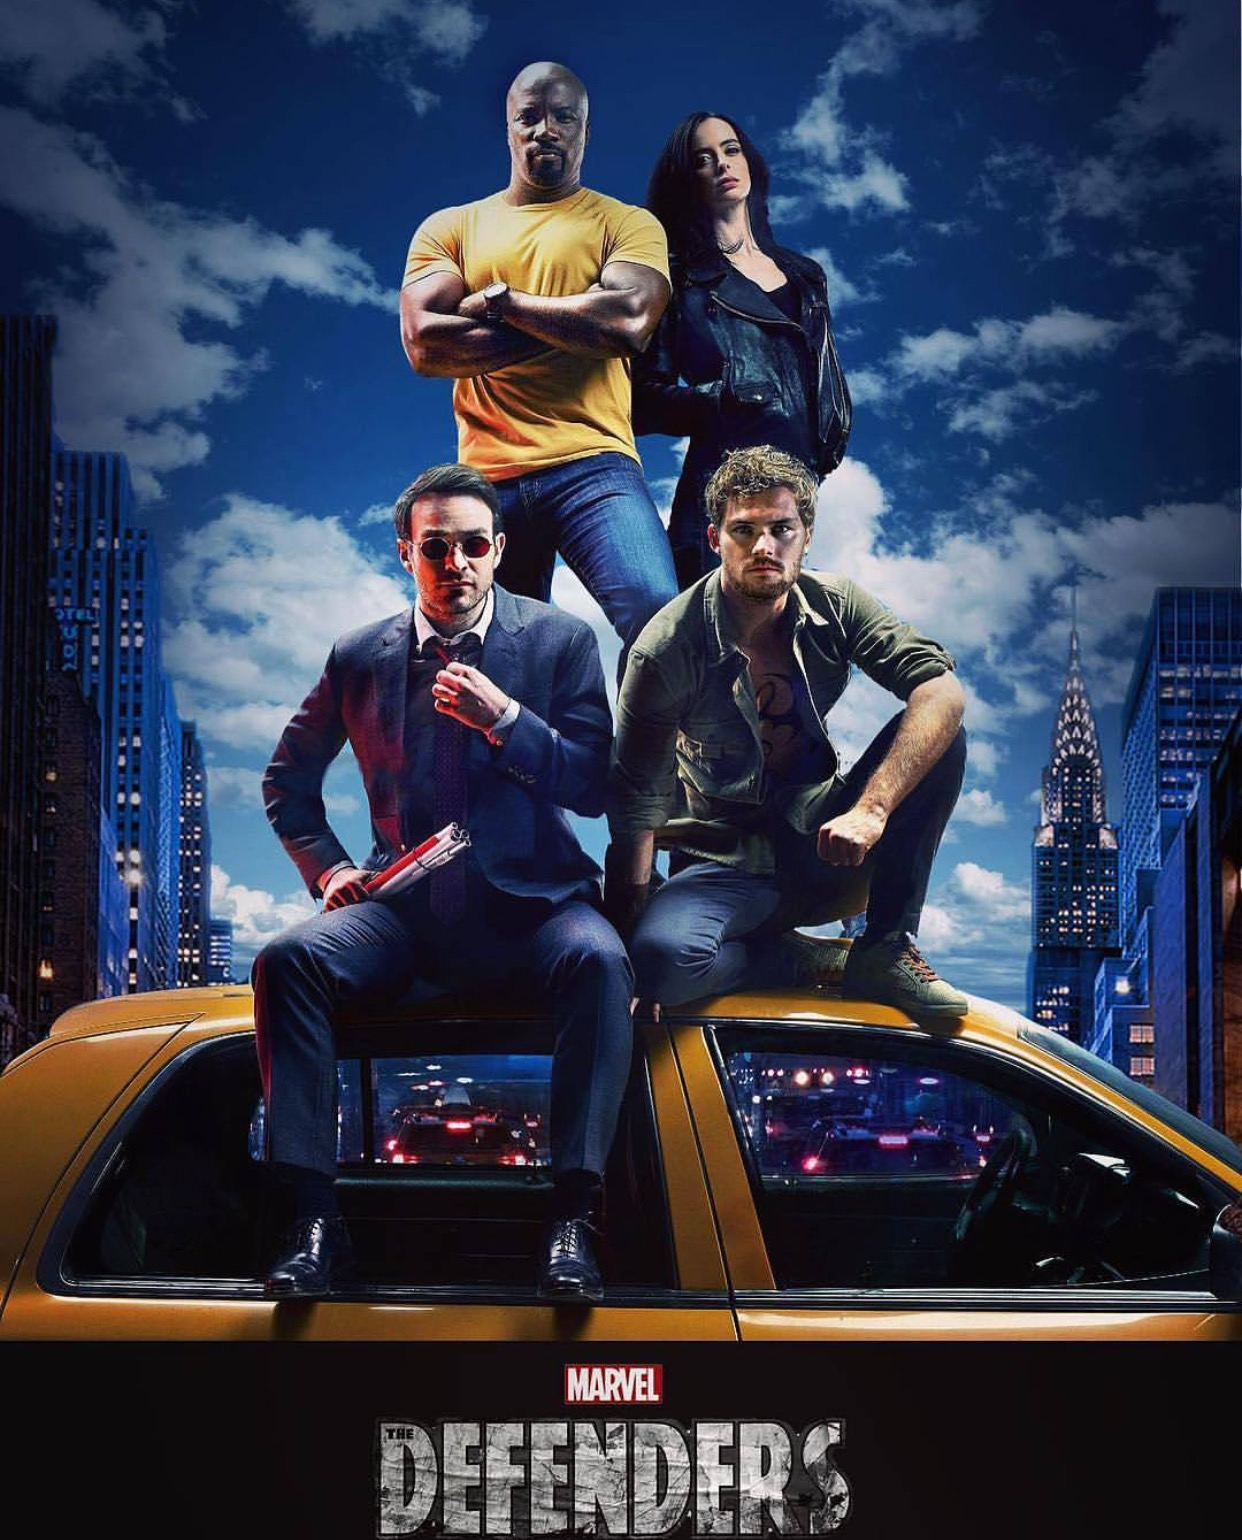 netflix the defenders Every Marvel Movie and TV Show Ranked From Worst to Best